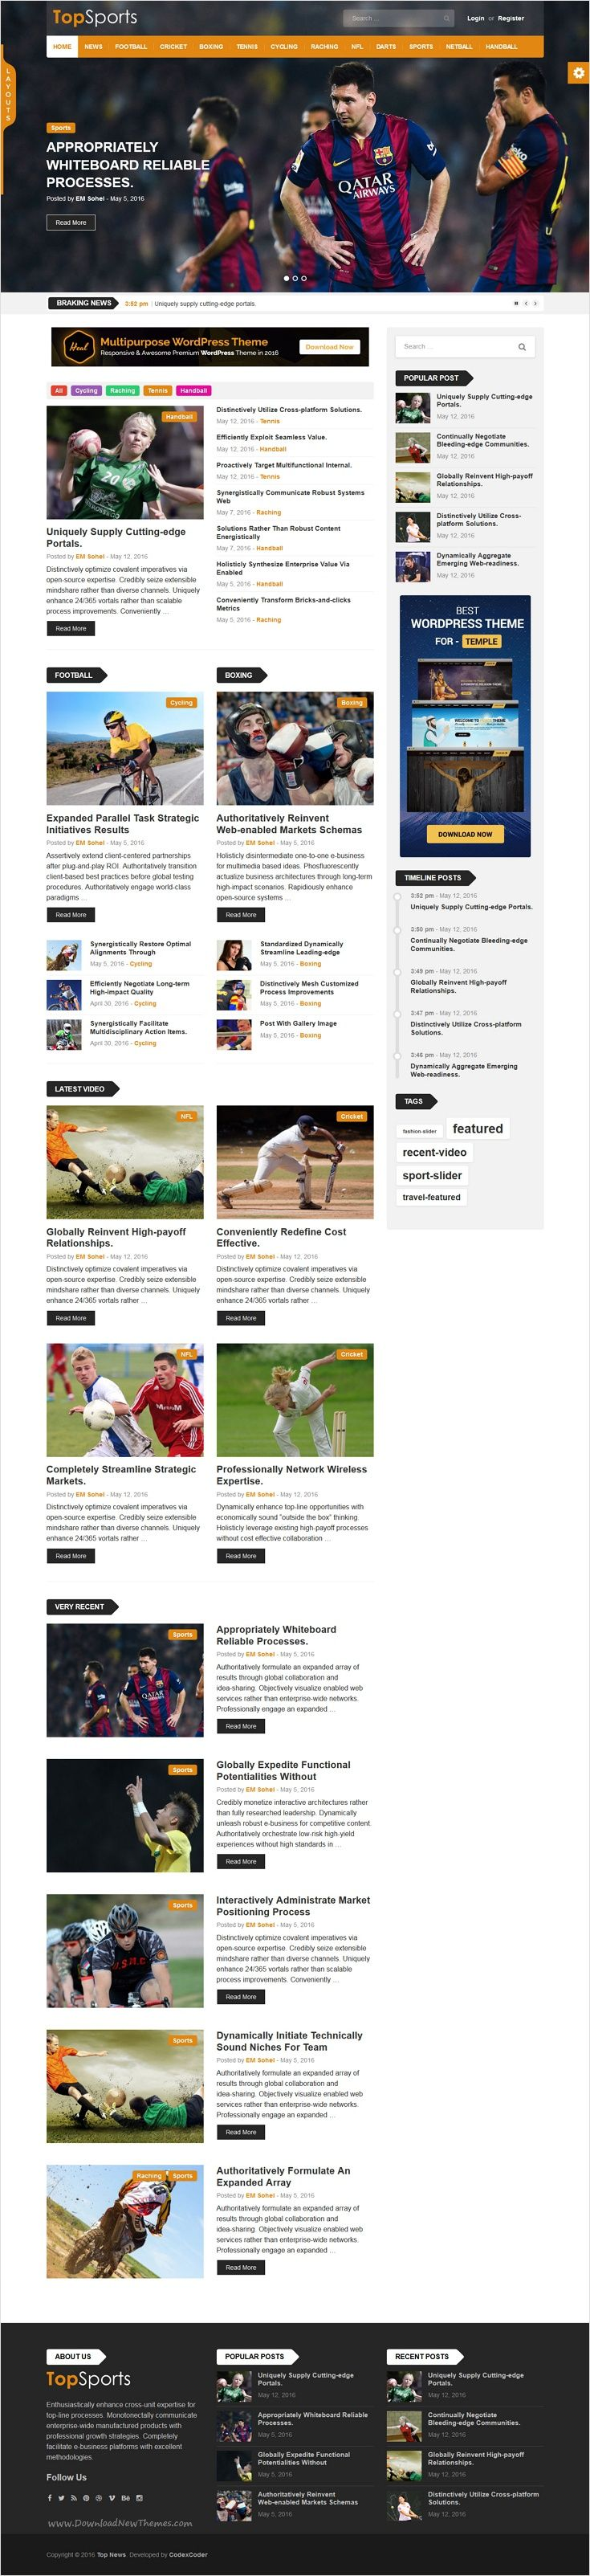 Top-News is a feature-rich, fast-loading and modern #WordPress Theme for #sports #news, newspaper, magazine, blog, video and publishing website with 9+ amazing homepage layouts download now➩ https://themeforest.net/item/topnews-news-magazine-newspaper-blog-viral-buzz-wordpress-theme/16171130?ref=Datasata